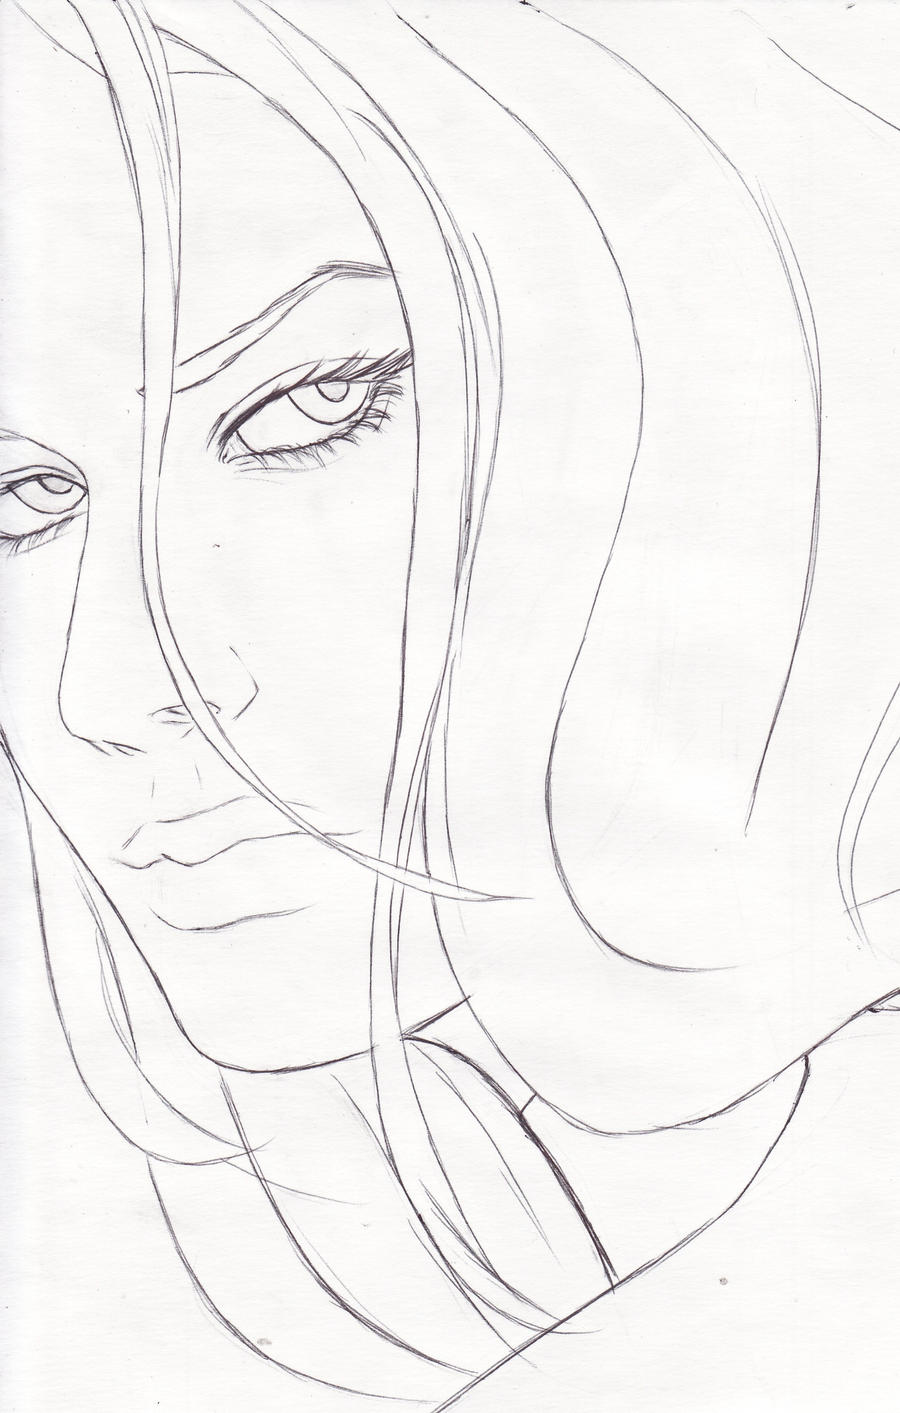 Line Drawing Of Female Face : Ayana s face line art by cleanslash on deviantart